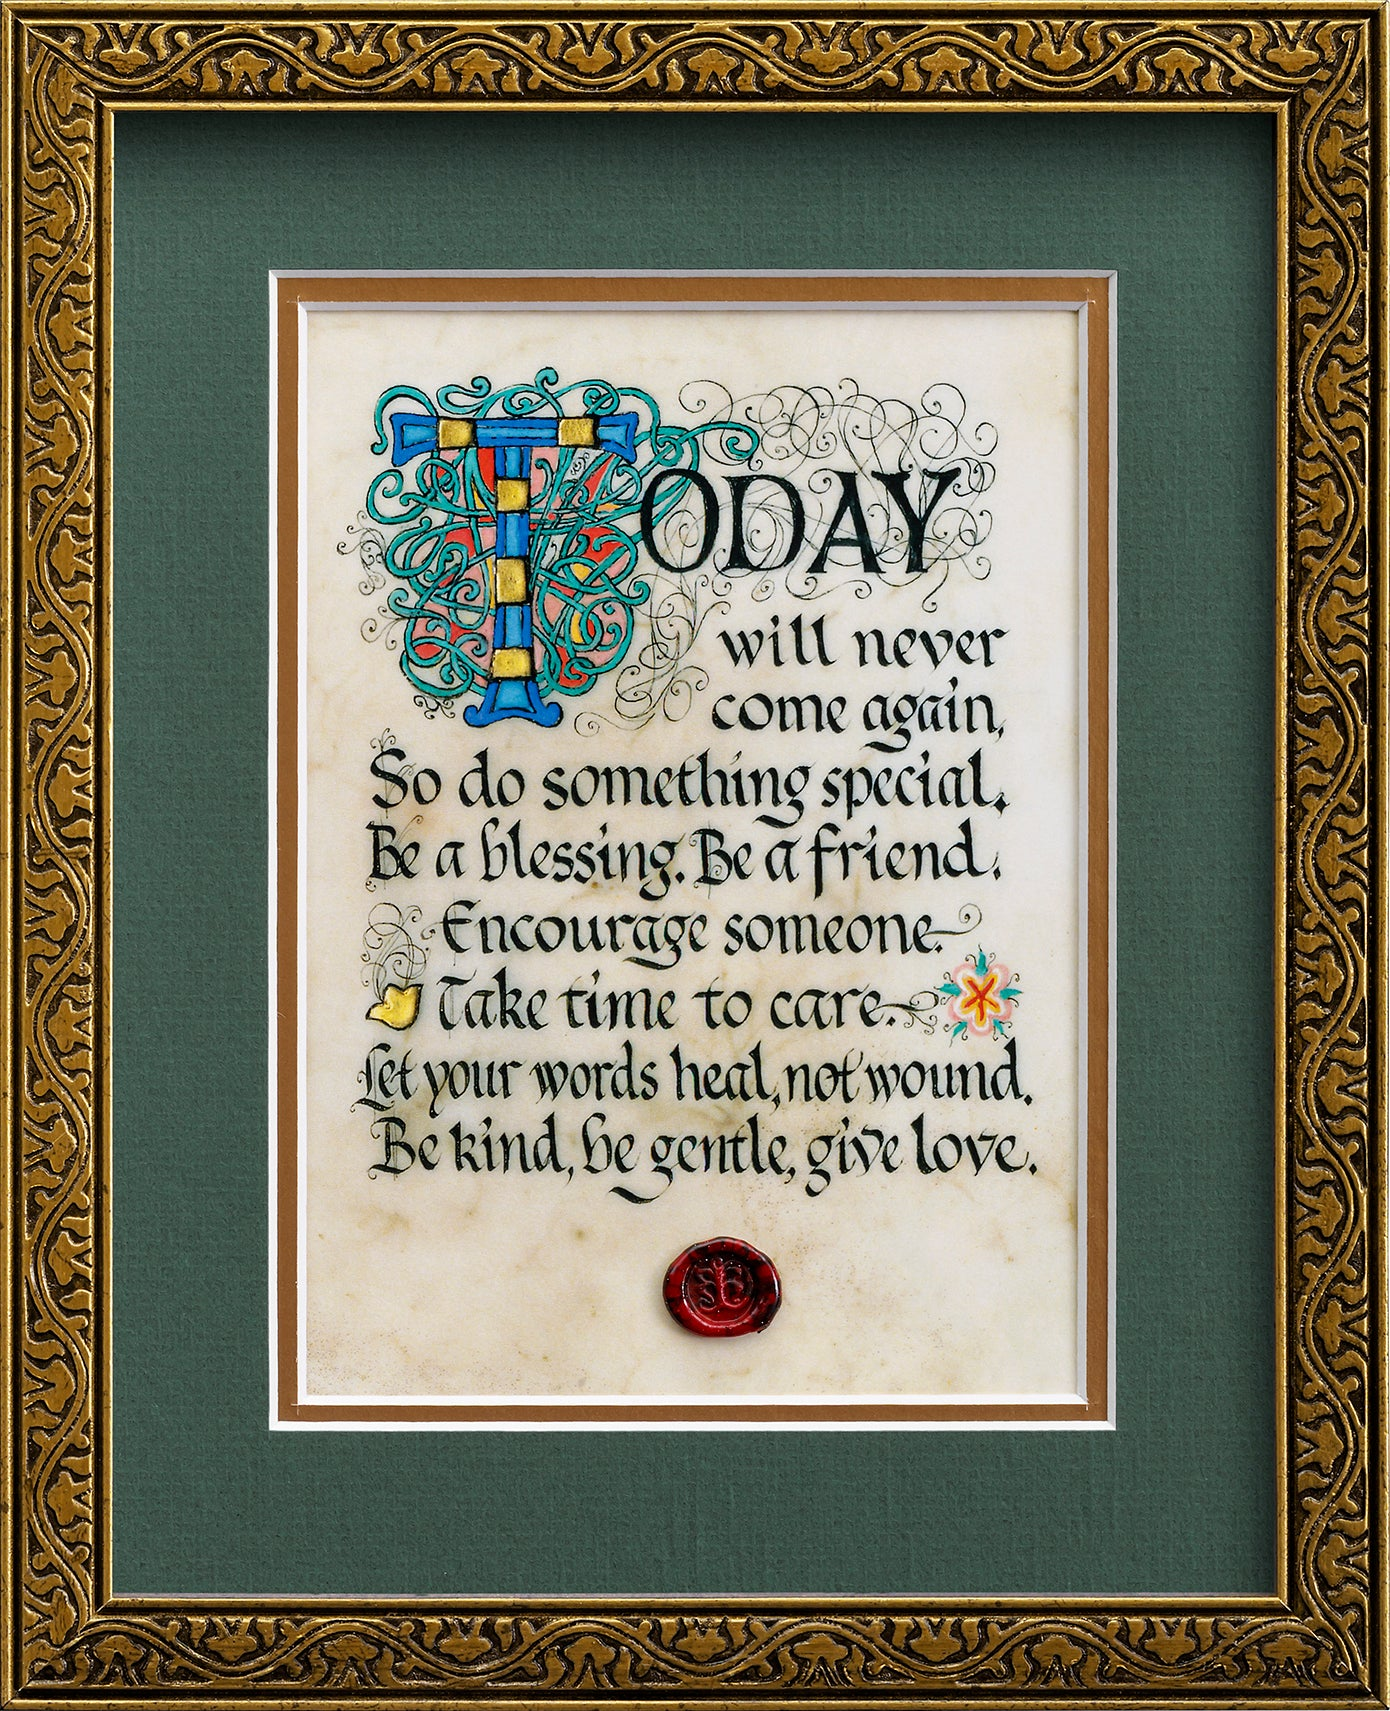 Do Something Special - Framed Celtic Art Print